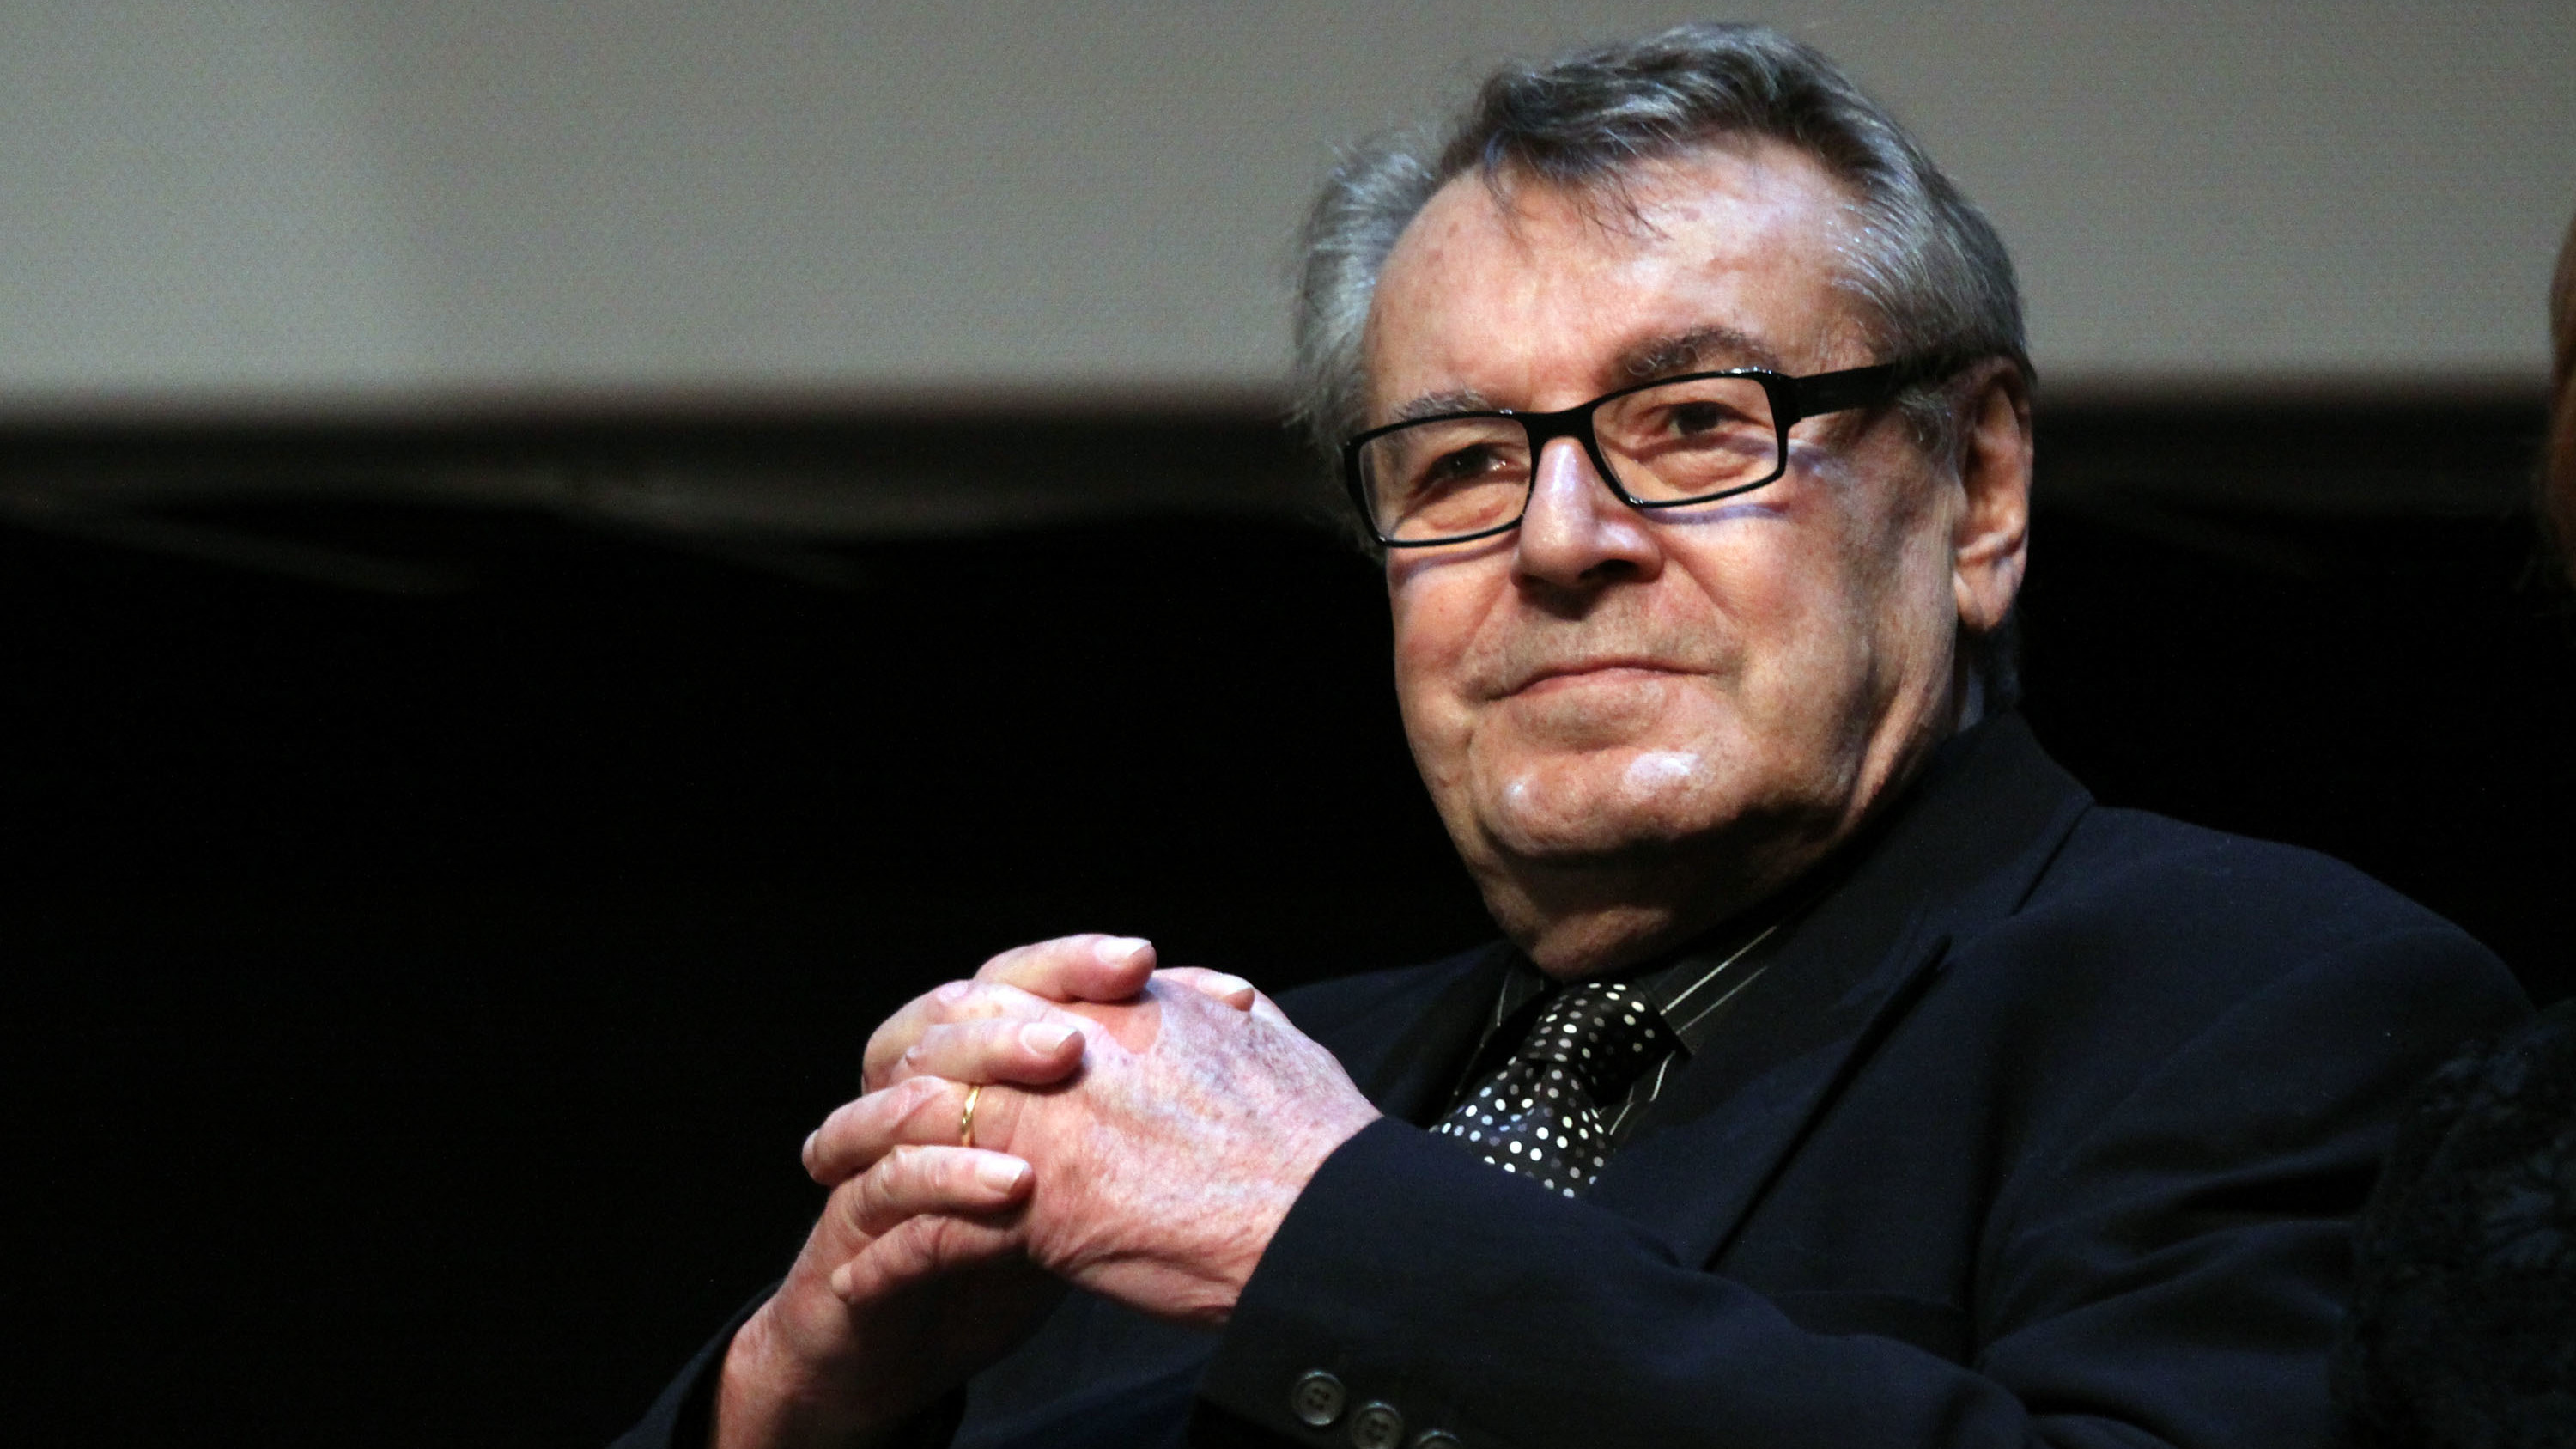 Milos Forman, renown director passes away at 86